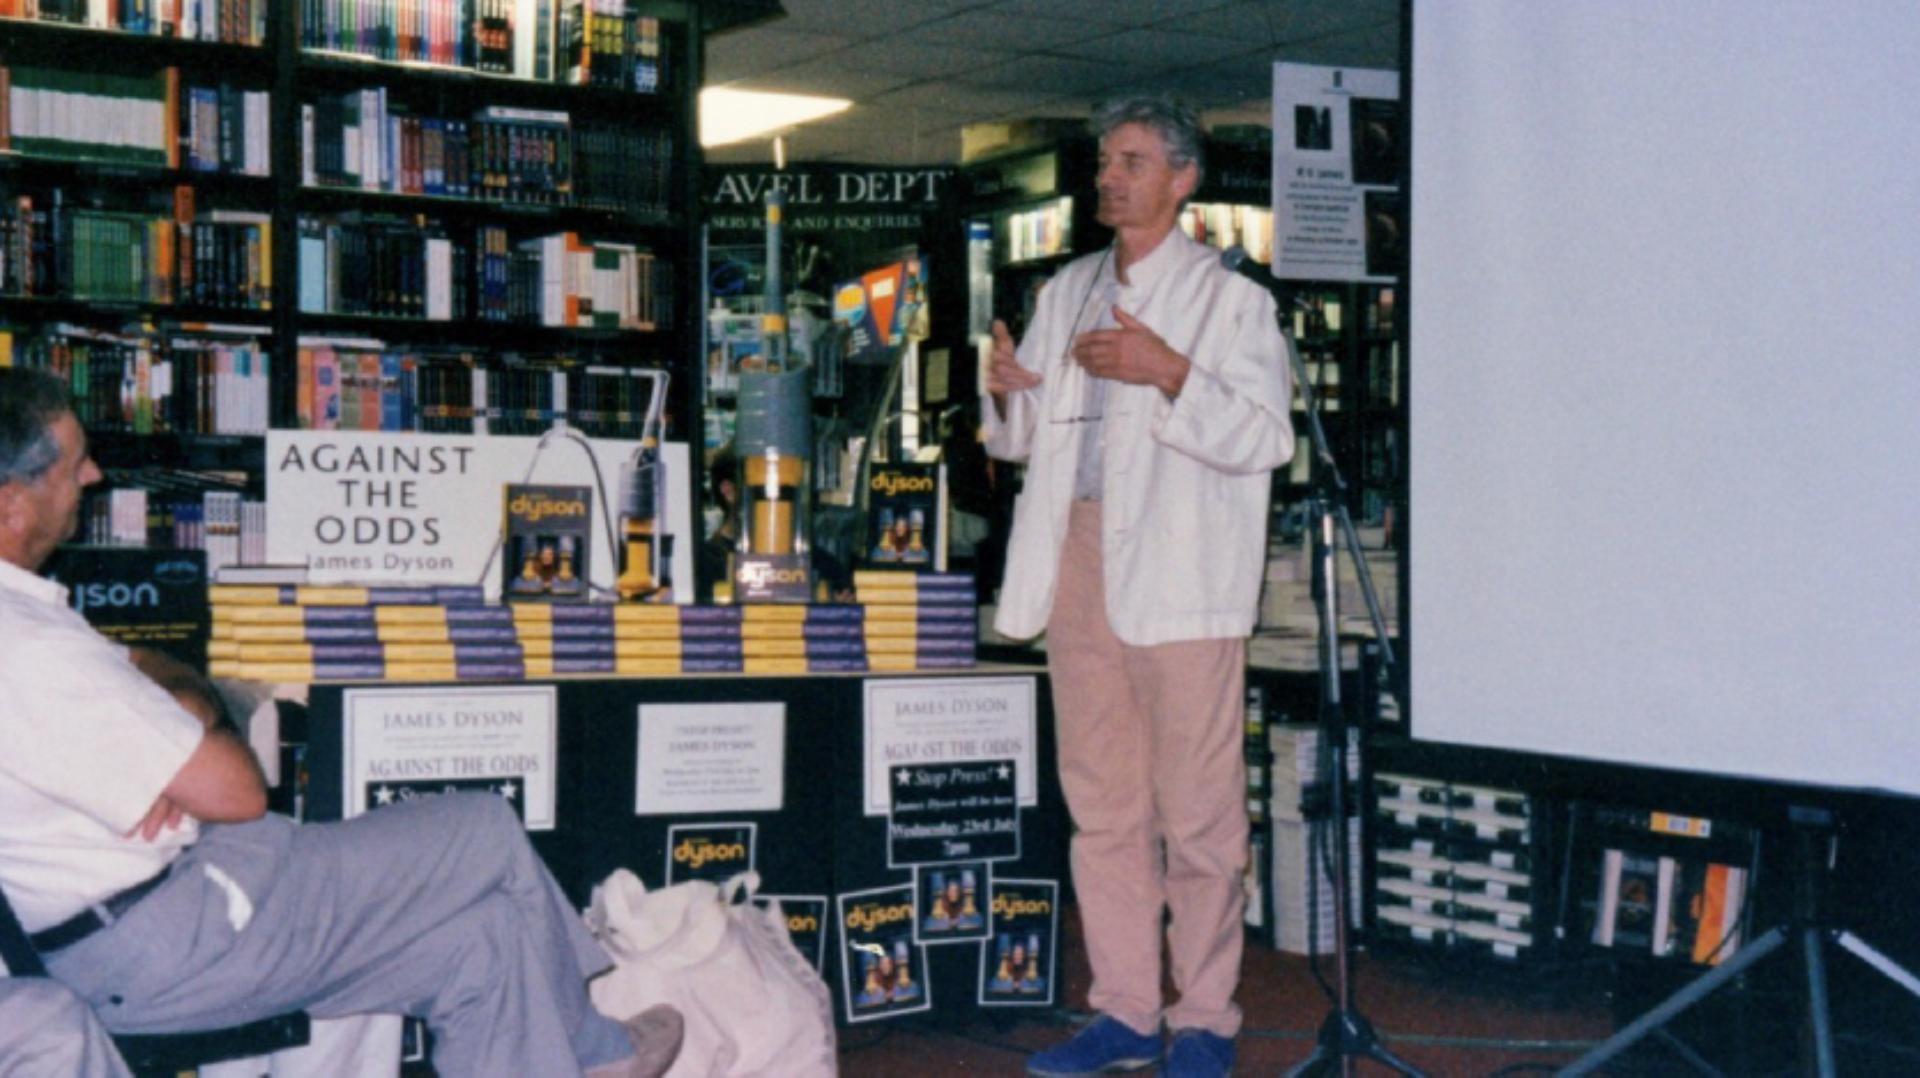 James Dyson standing in a book store